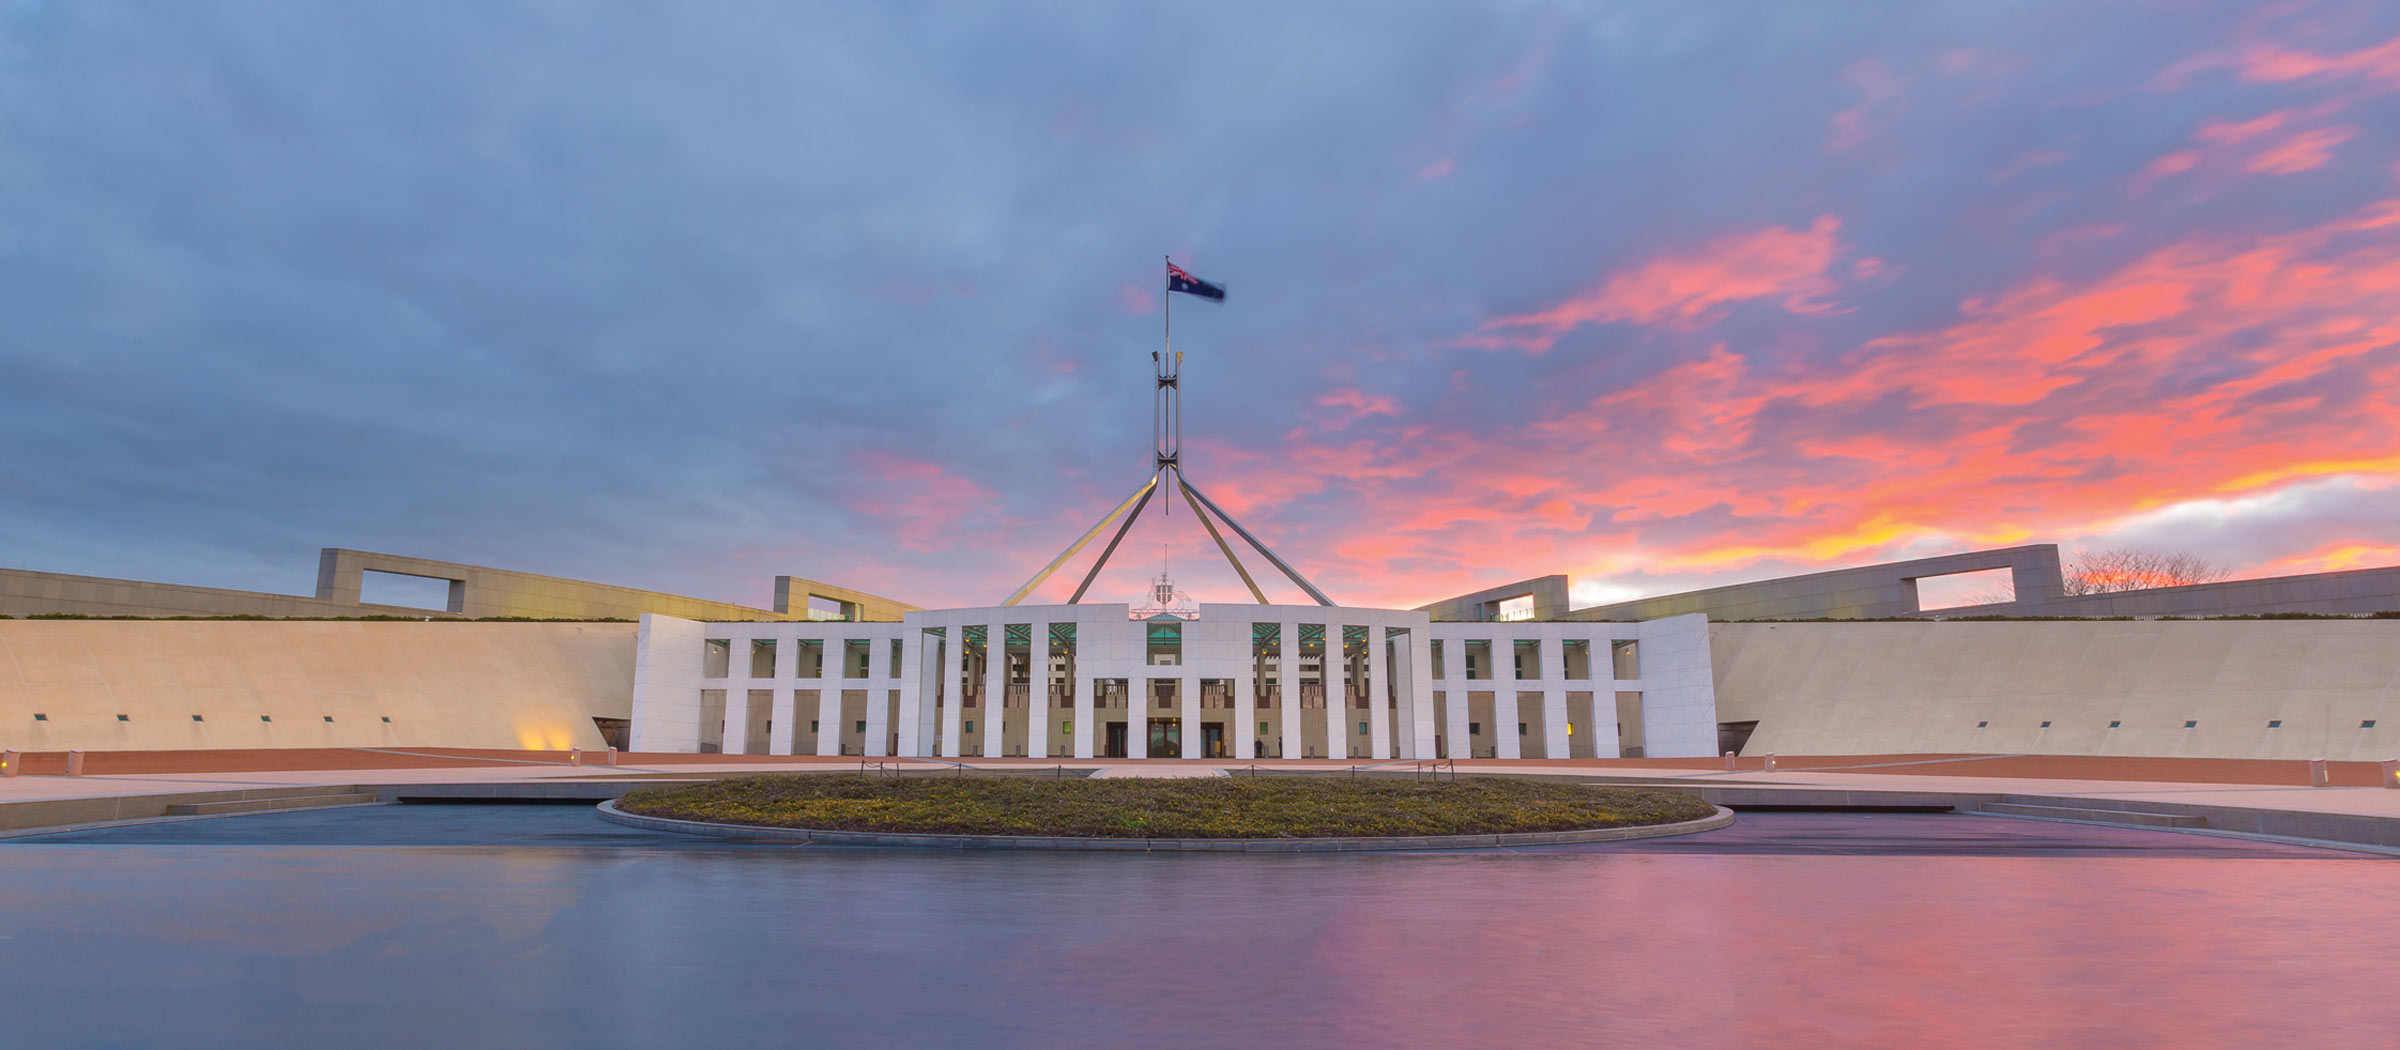 Parliament house photo